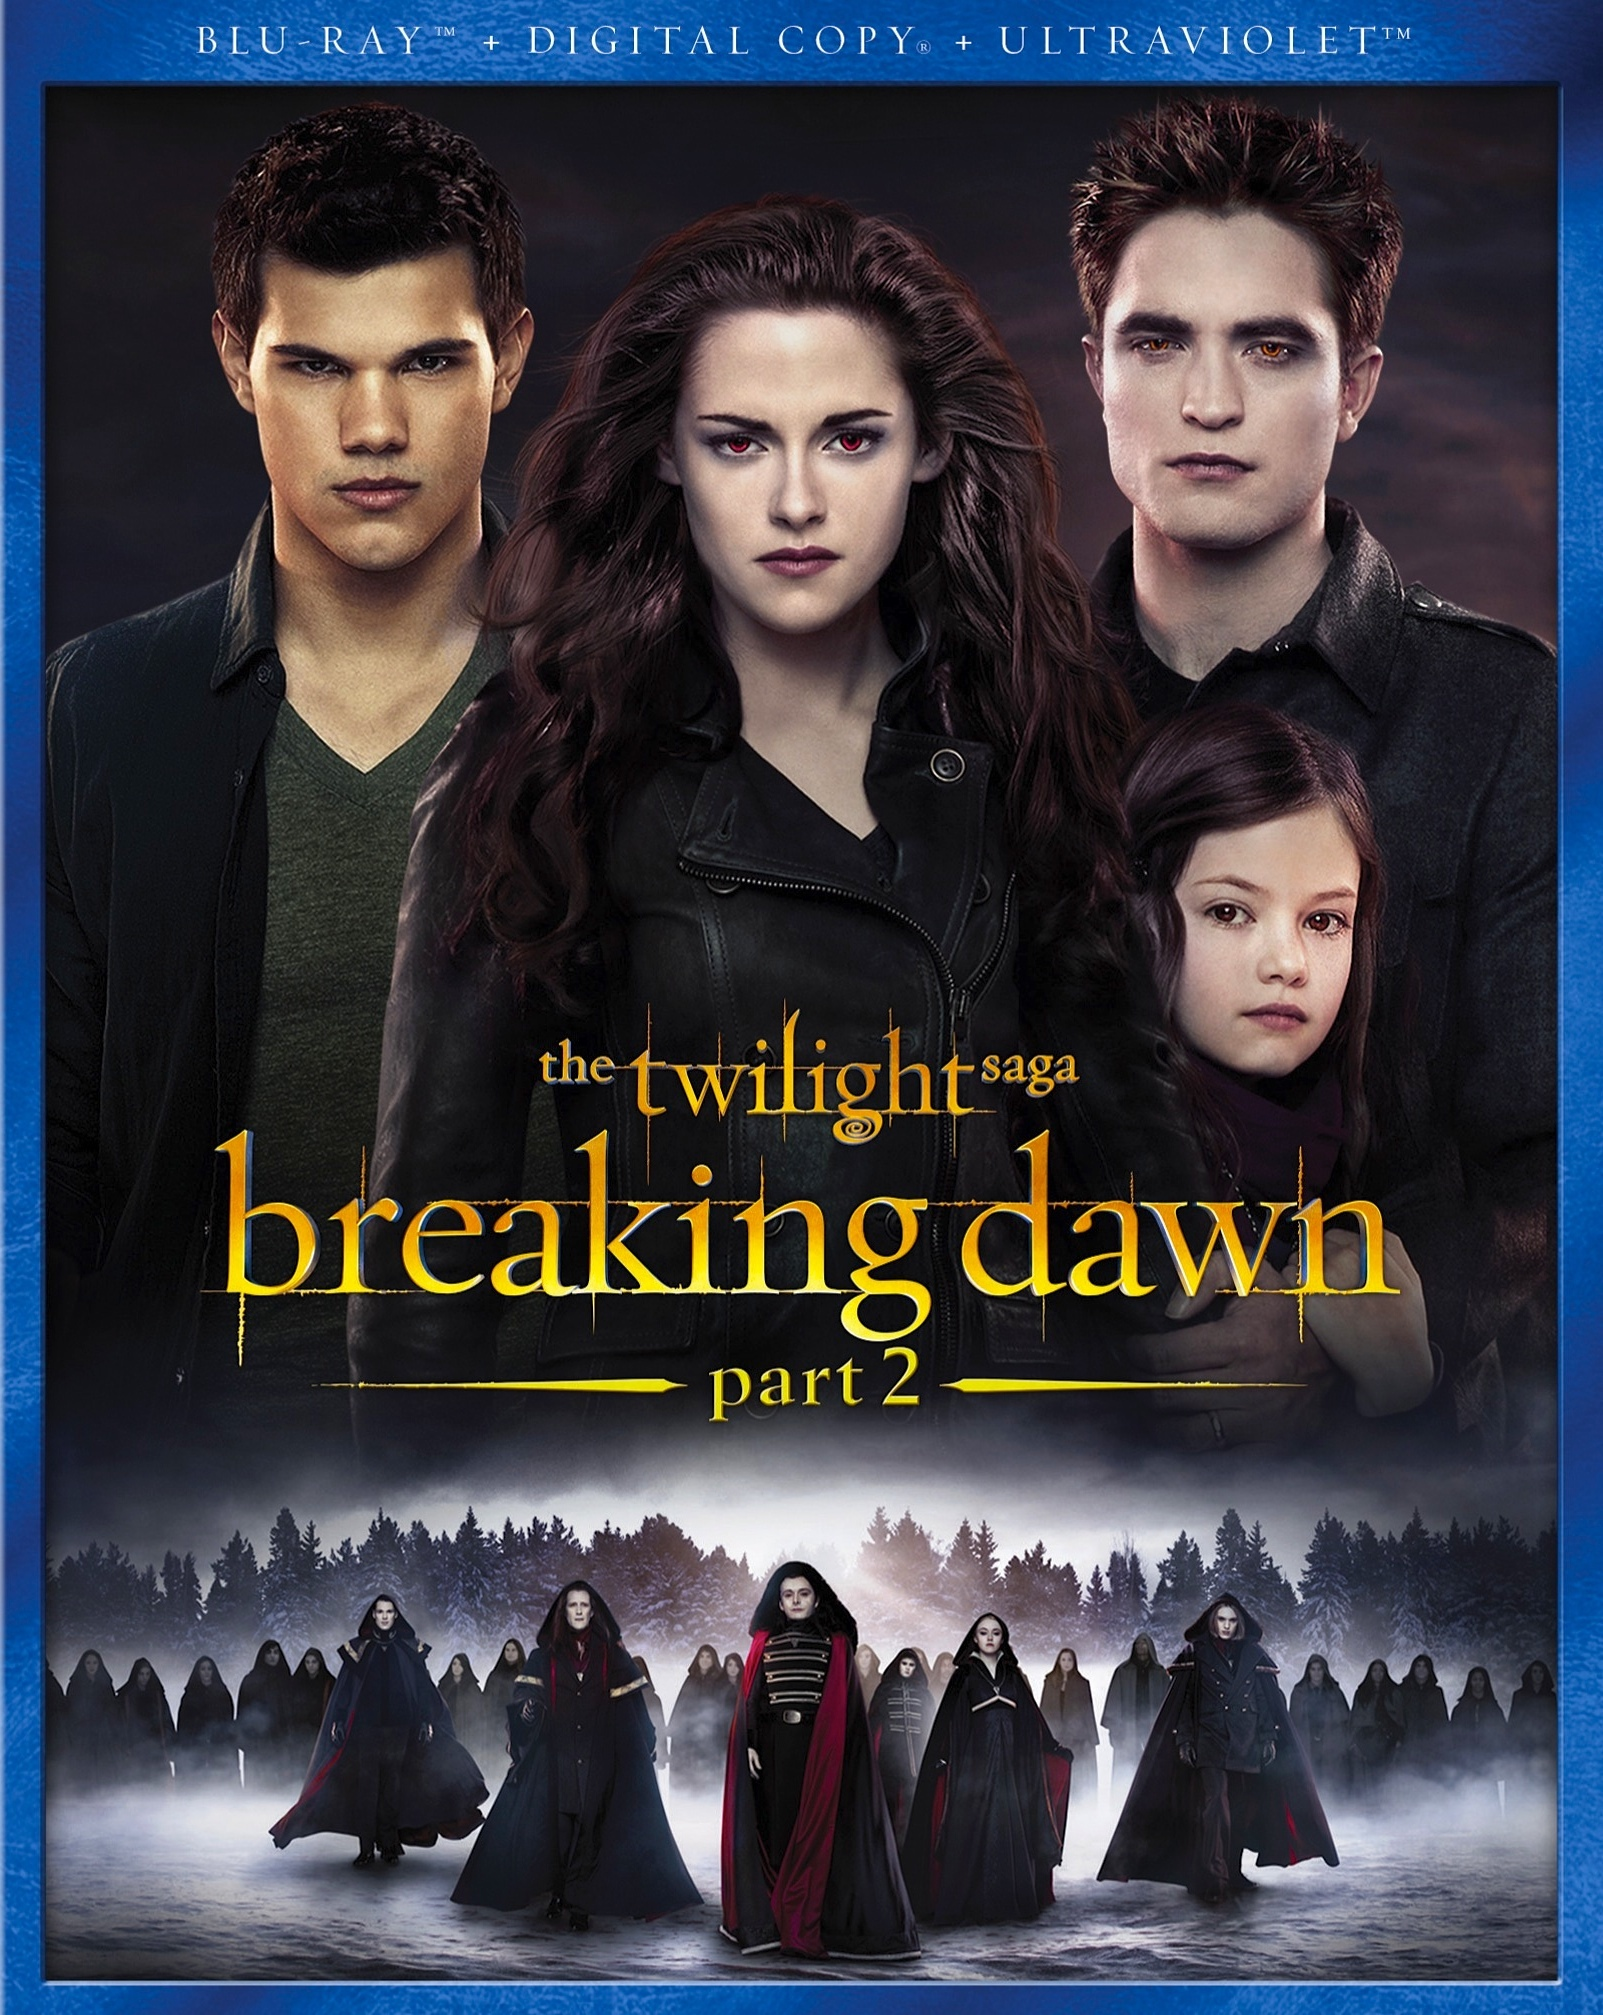 The Twilight Saga: Breaking Dawn - Part 2 (2012) 720p BluRay x264 DTS-HDWinG